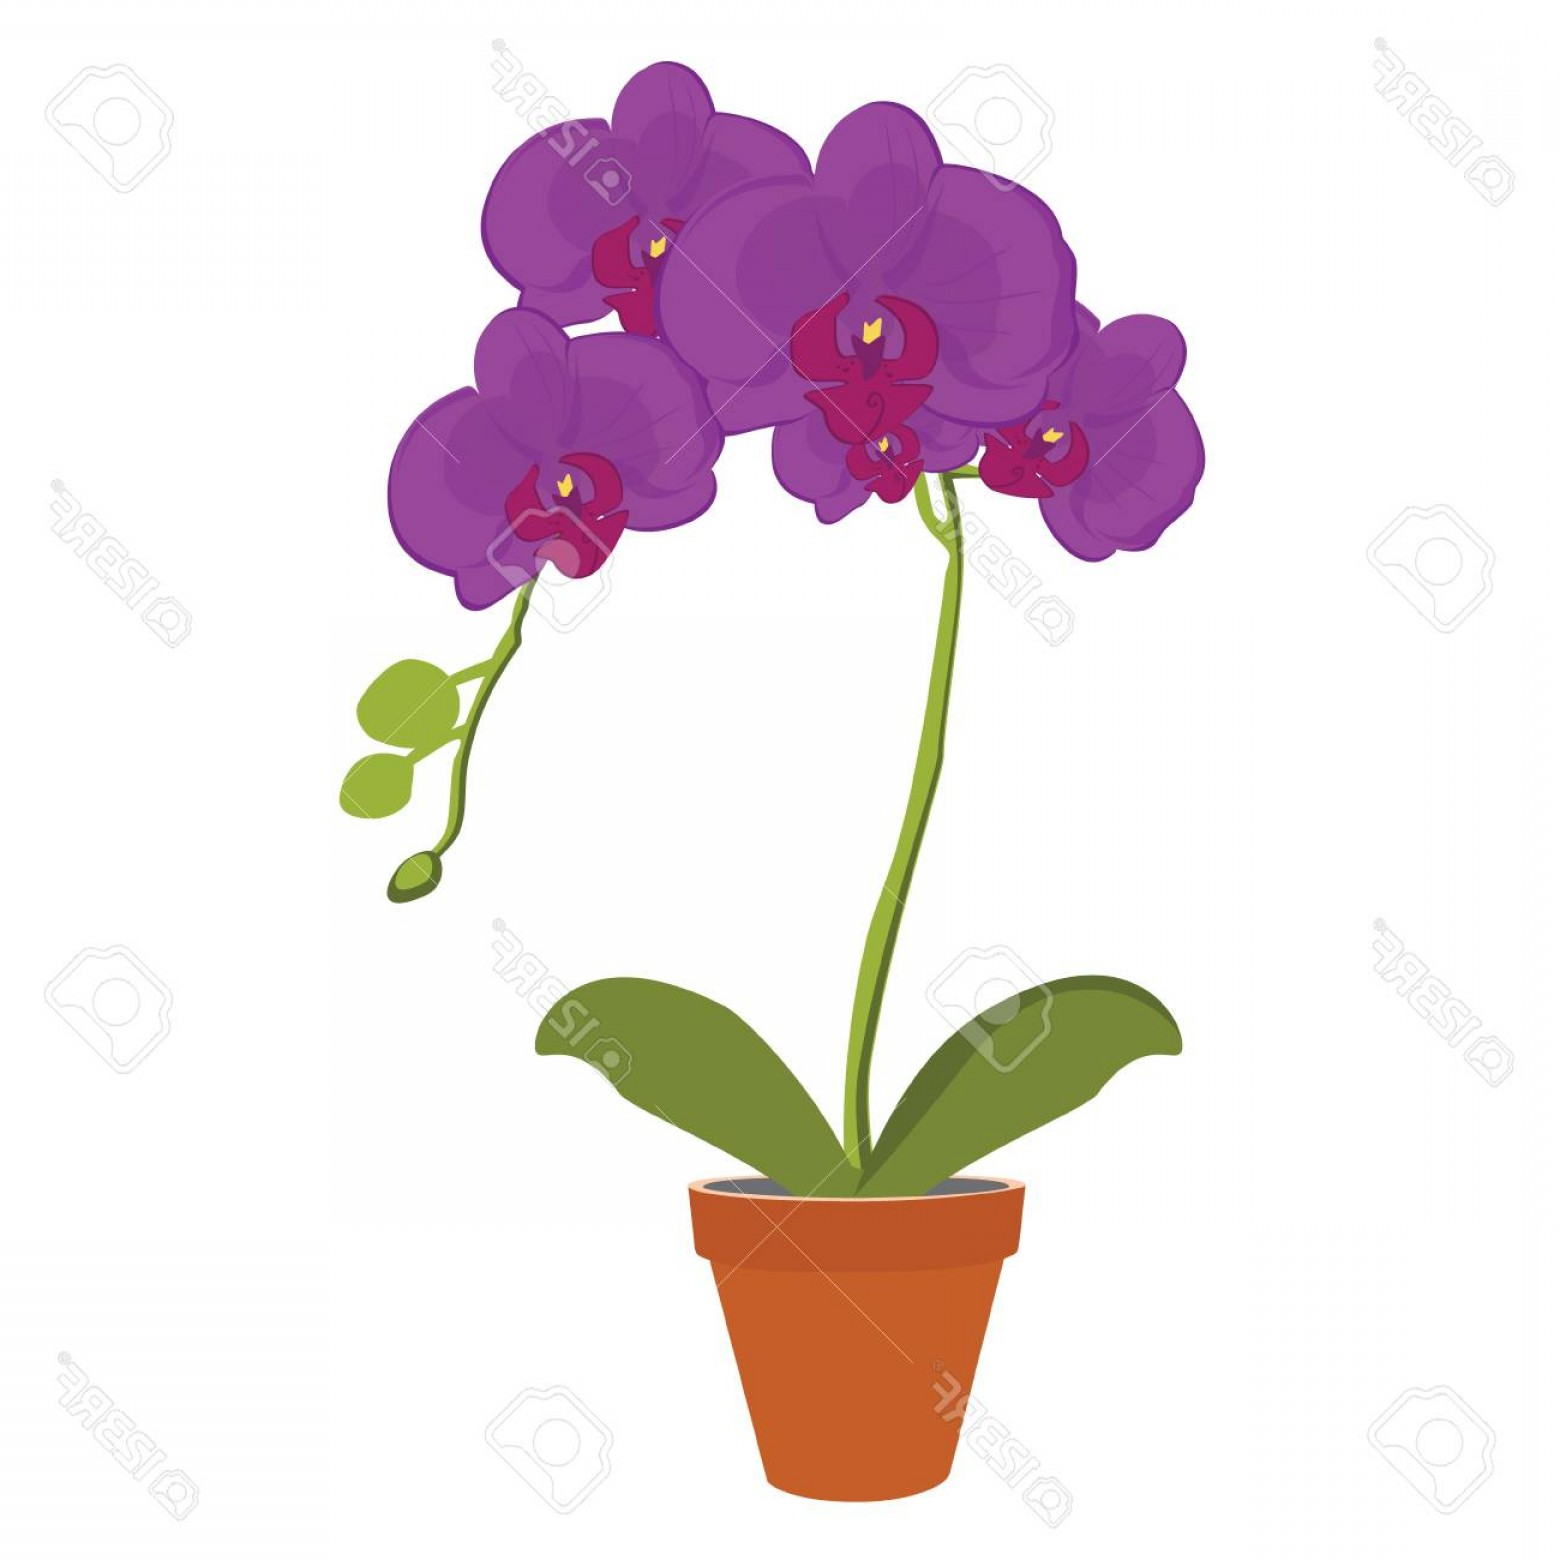 Purple Orchid Vector: Photovector Illustration Exotic Purple Orchid Flower In A Pot Phalaenopsis Orchid Blooming In A Pot